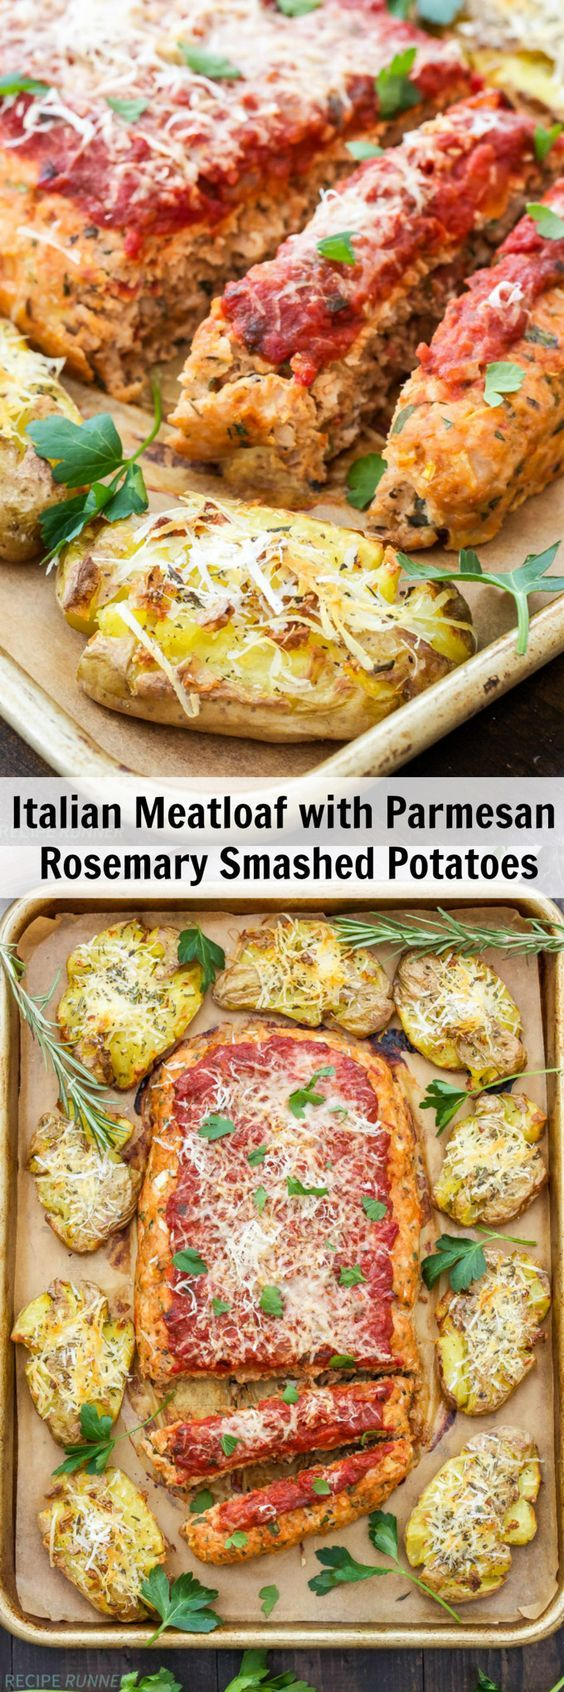 Italian Turkey Meatloaf with Parmesan Rosemary Smashed Potatoes | This ...